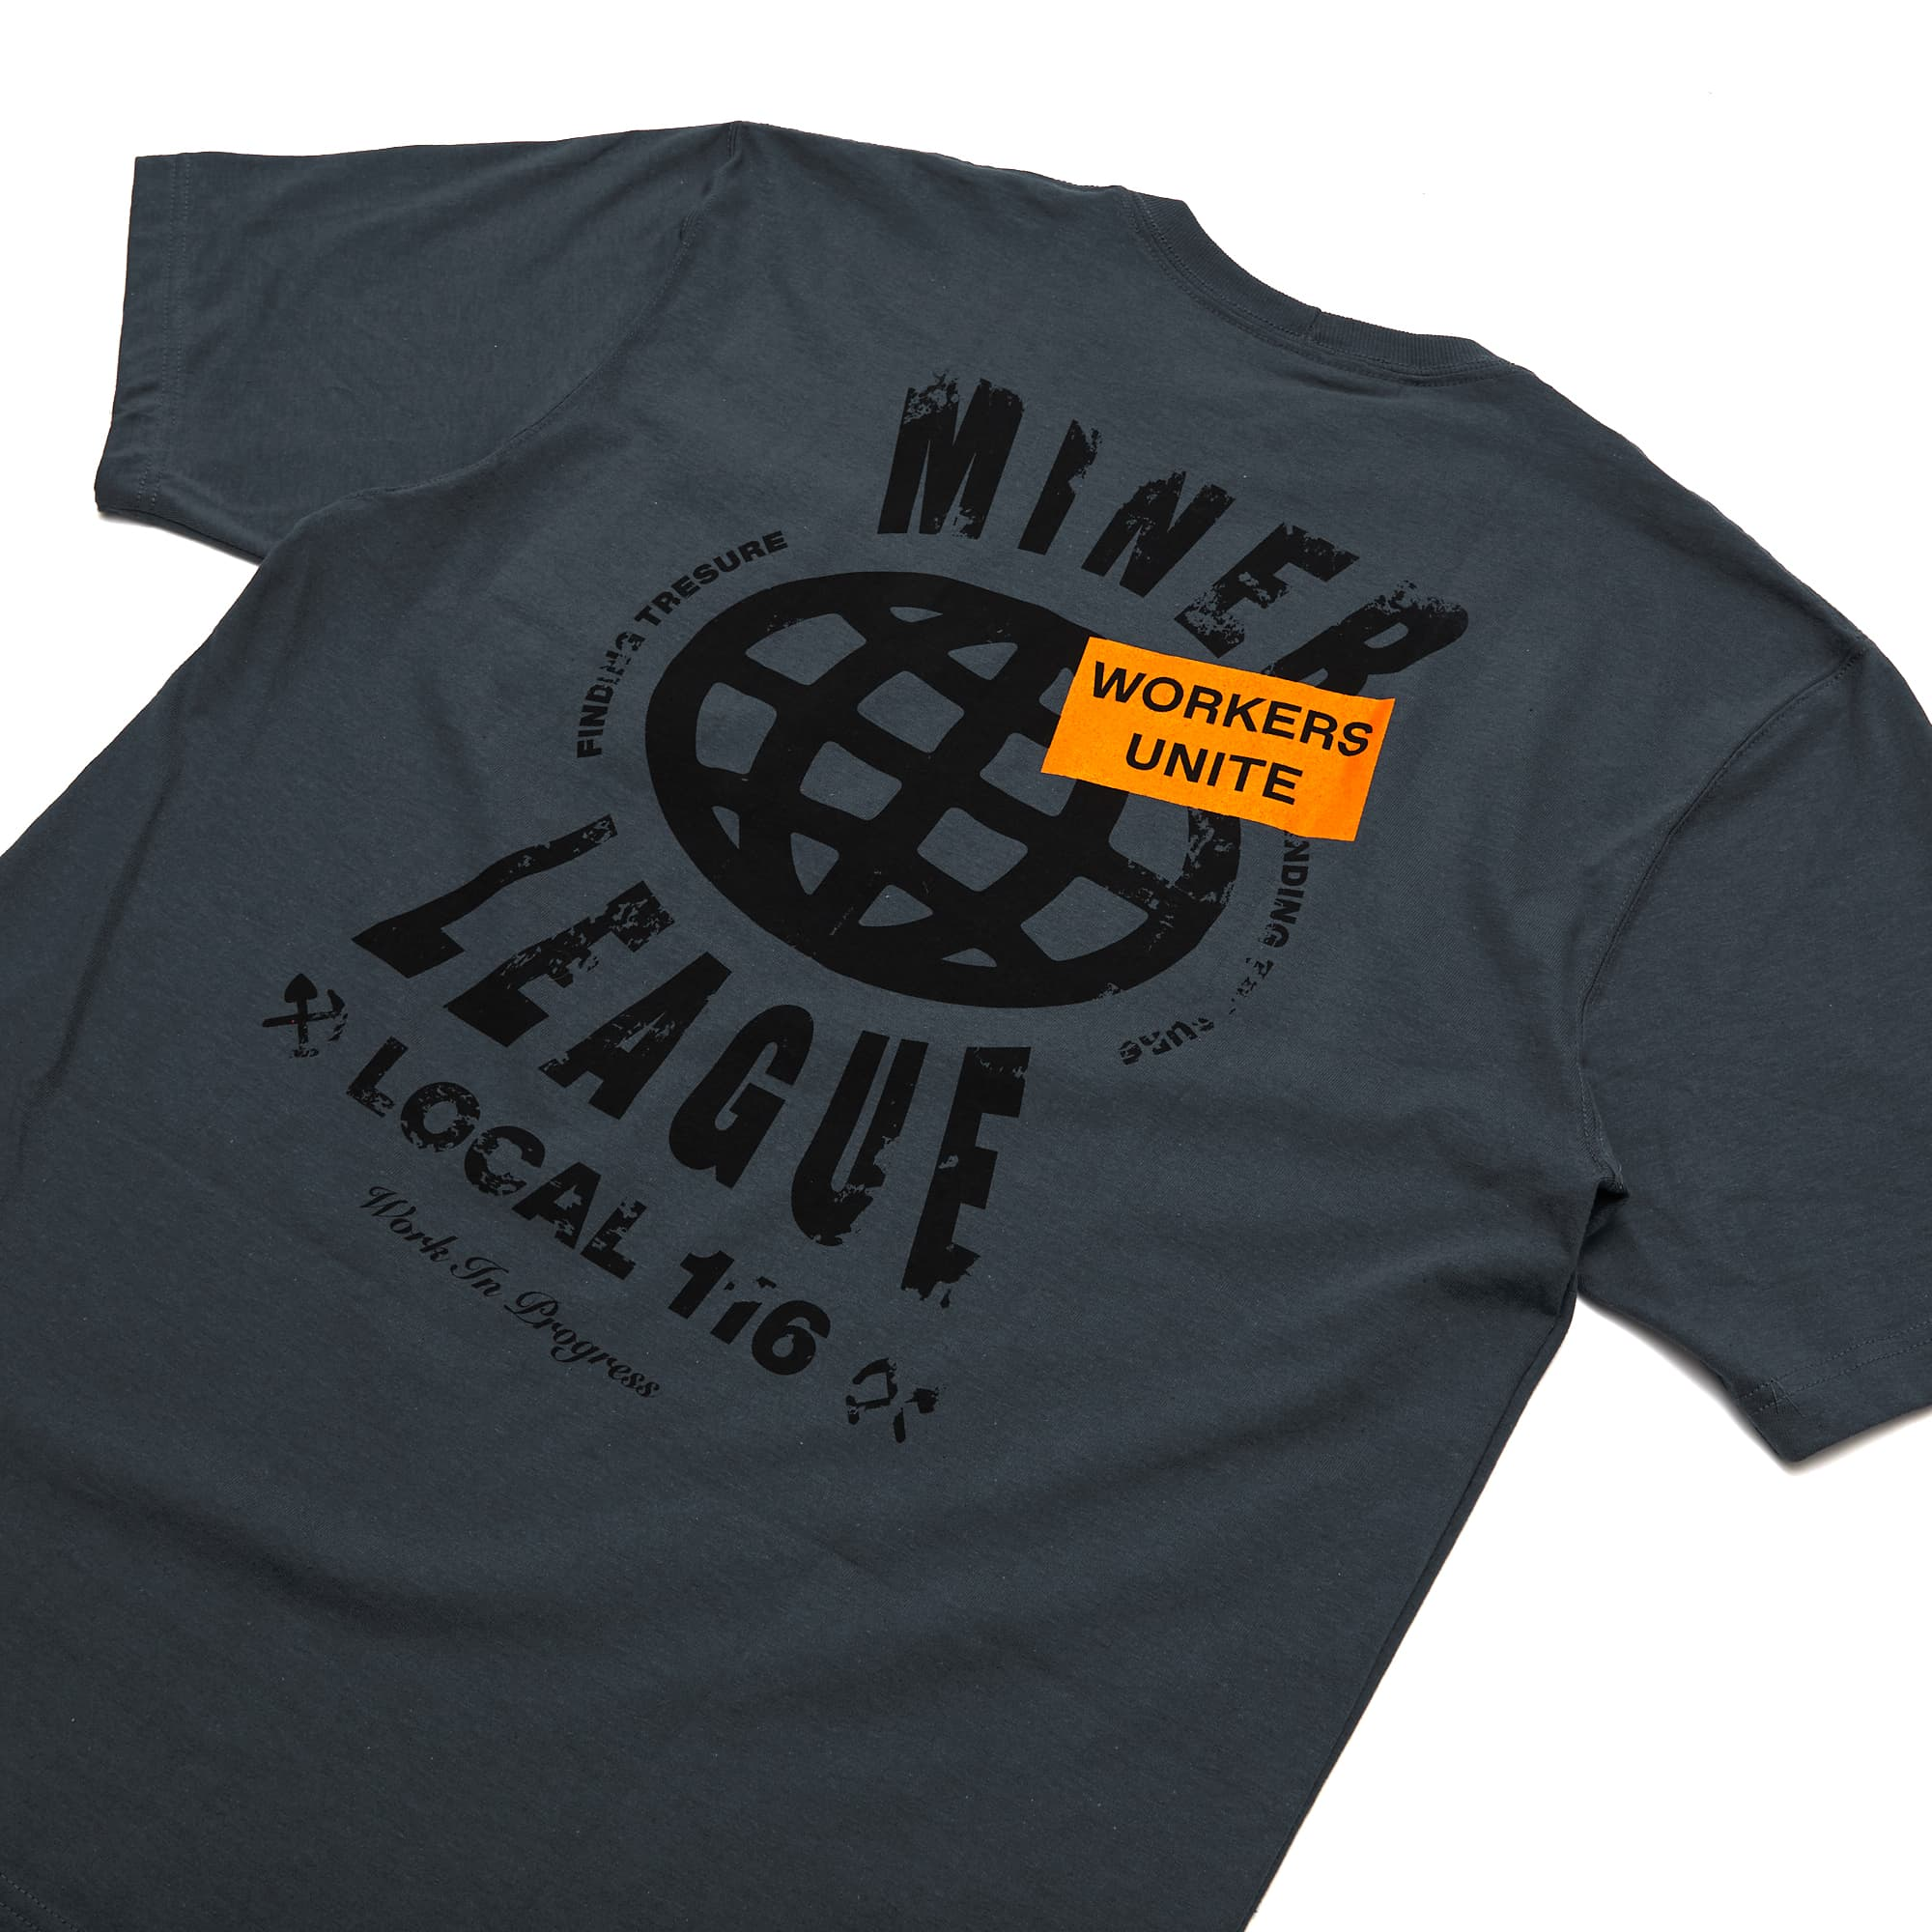 Andy Mineo x Carhartt 'Workers Unite' Tee + 'Work In Progress' MP3 Digital Download